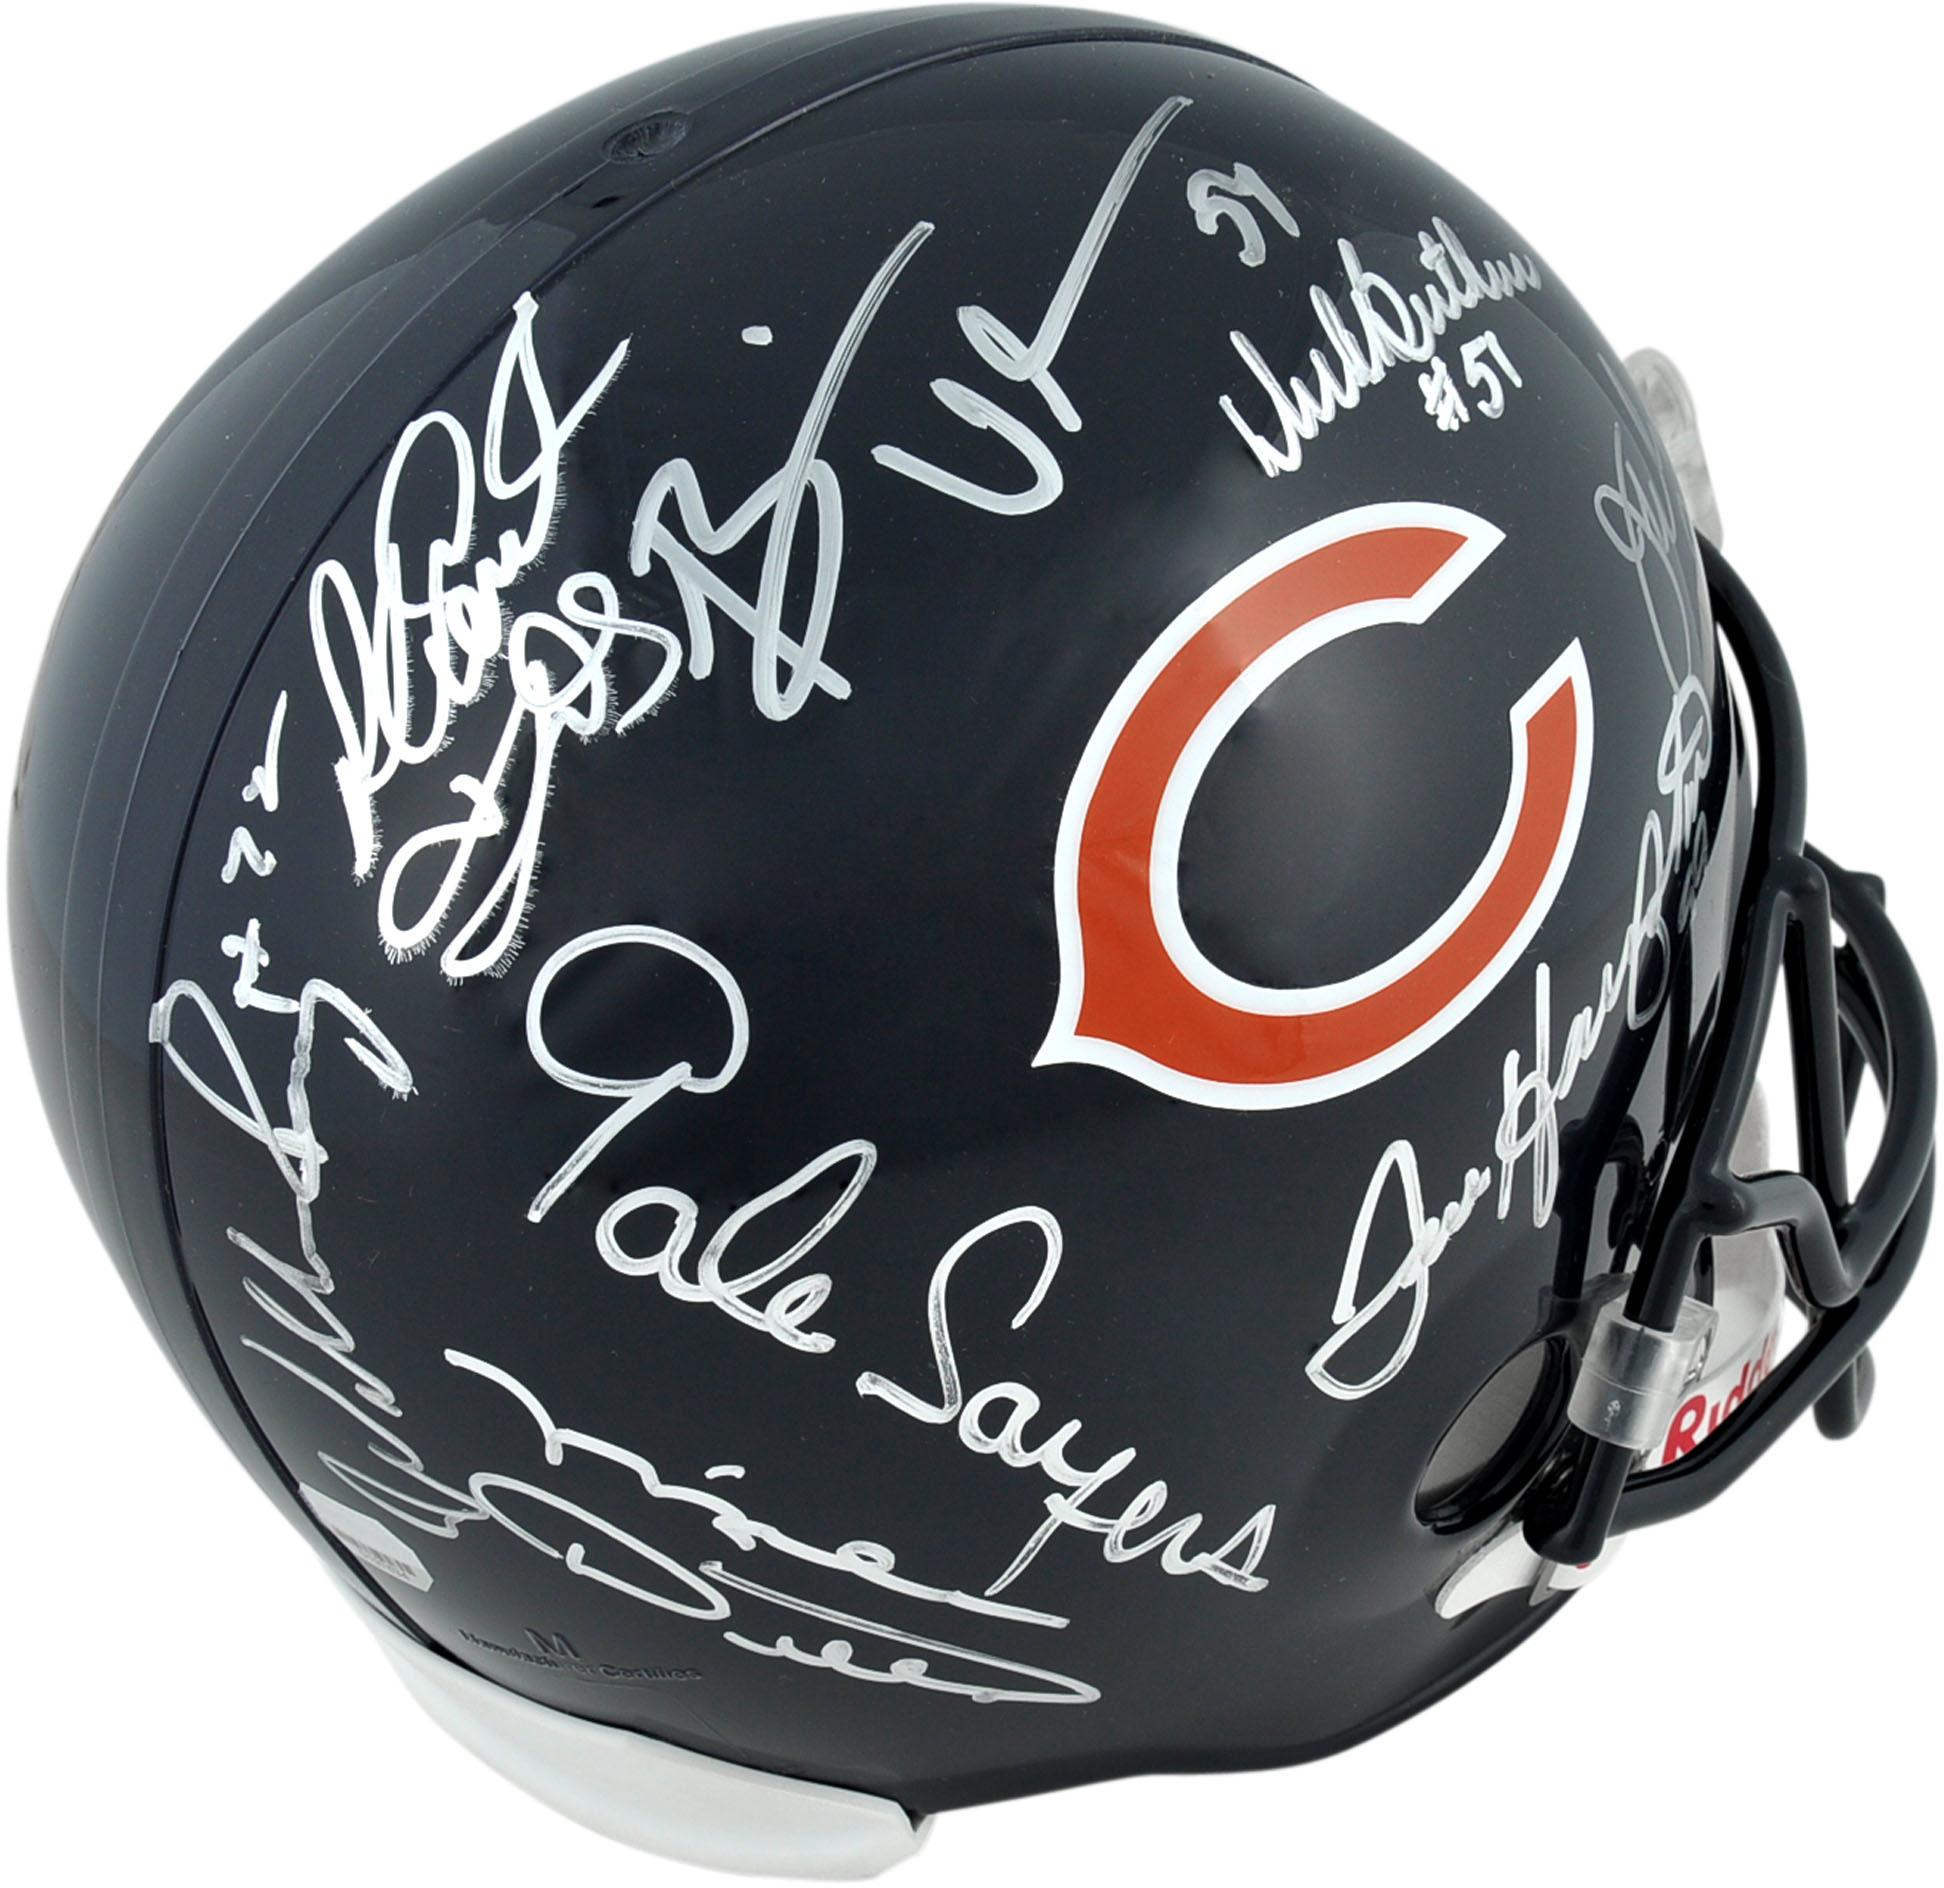 Chicago Bears Autographed Riddell Replica Helmet with 8 Signatures - Fanatics Authentic Certified